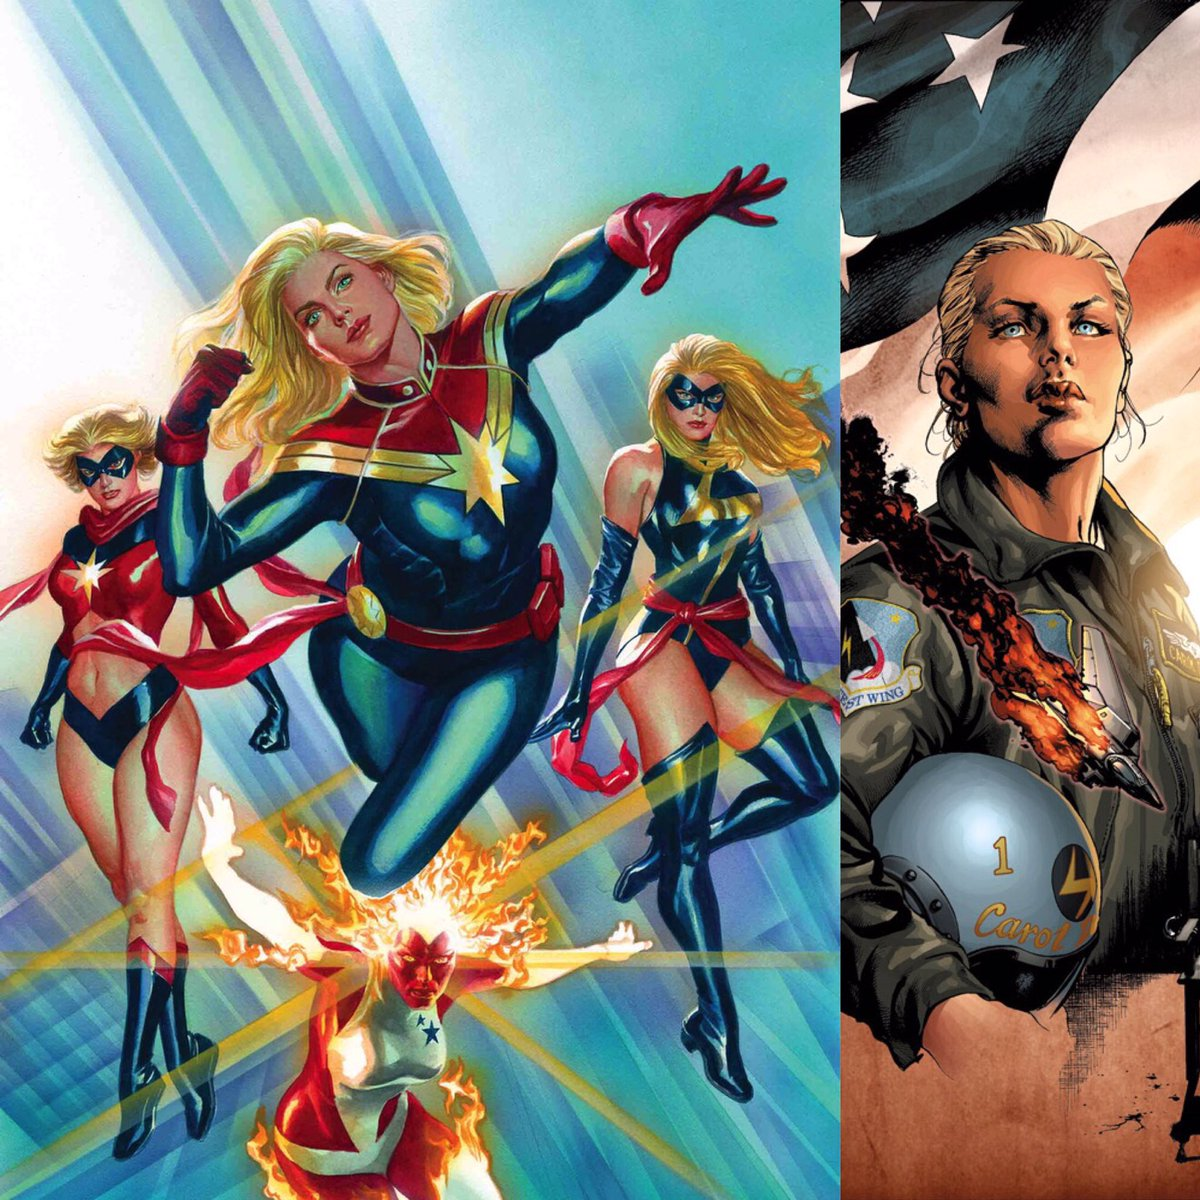 50 years of history. It's incredible to see how much #CaptainMarvel developed as a character, as a woman and a hero! Everything she went through, every adversity she overcame, made her who she is. She claimed her space as a respected leader and became Marvel's premiere heroine!